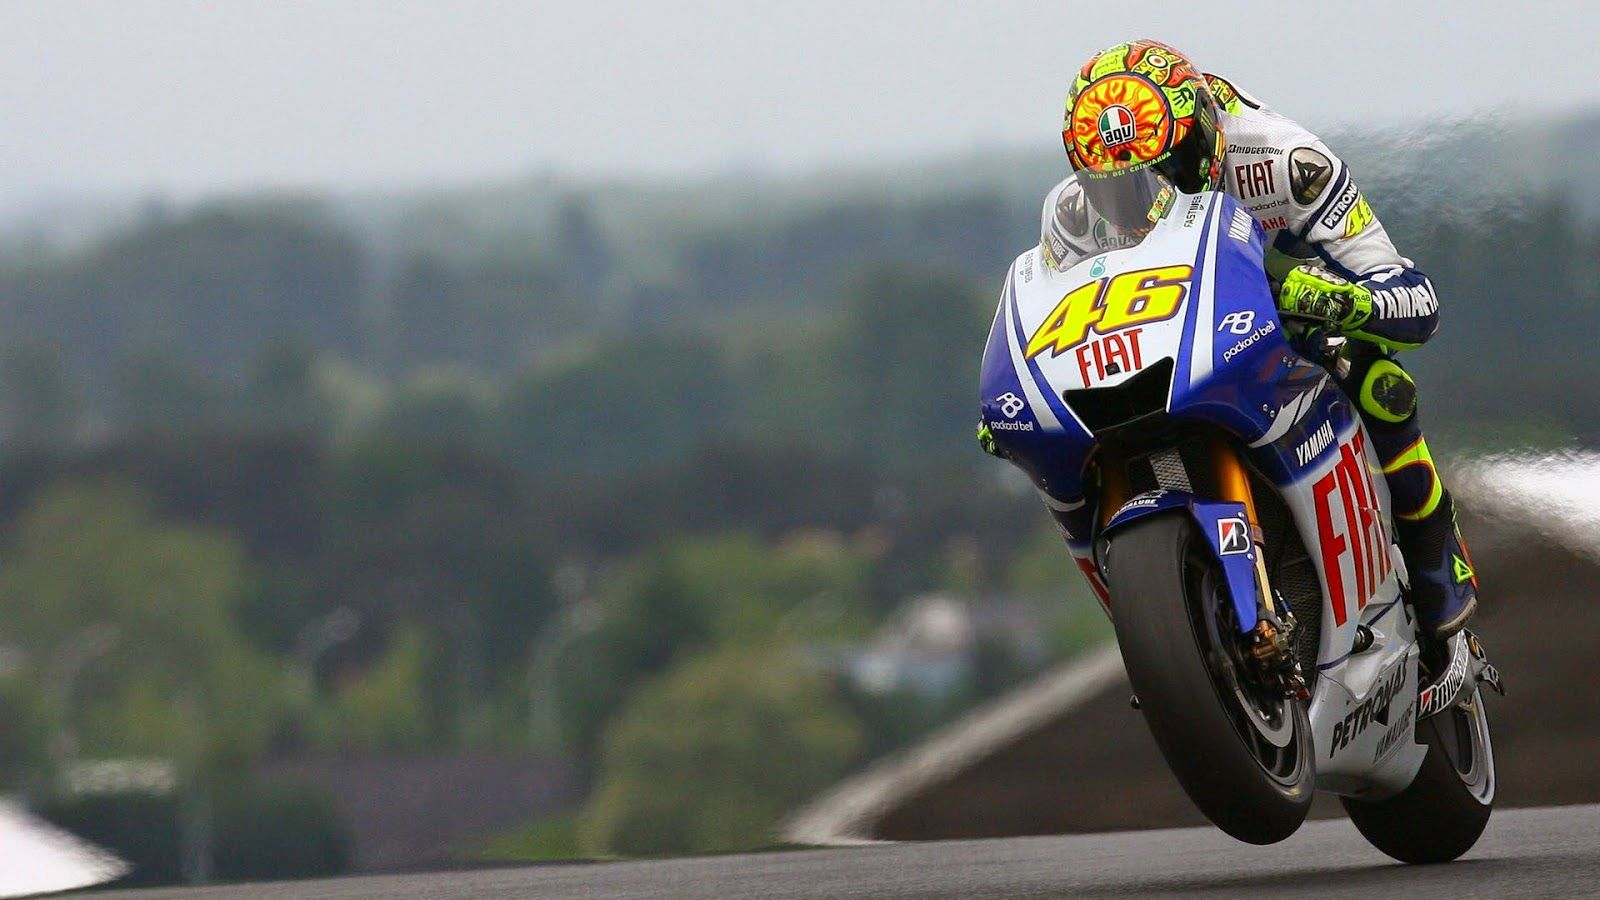 Free download Valentino Rossi Yamaha Wallpapers HD Walpaperes [1600x900] for your Desktop, Mobile & Tablet